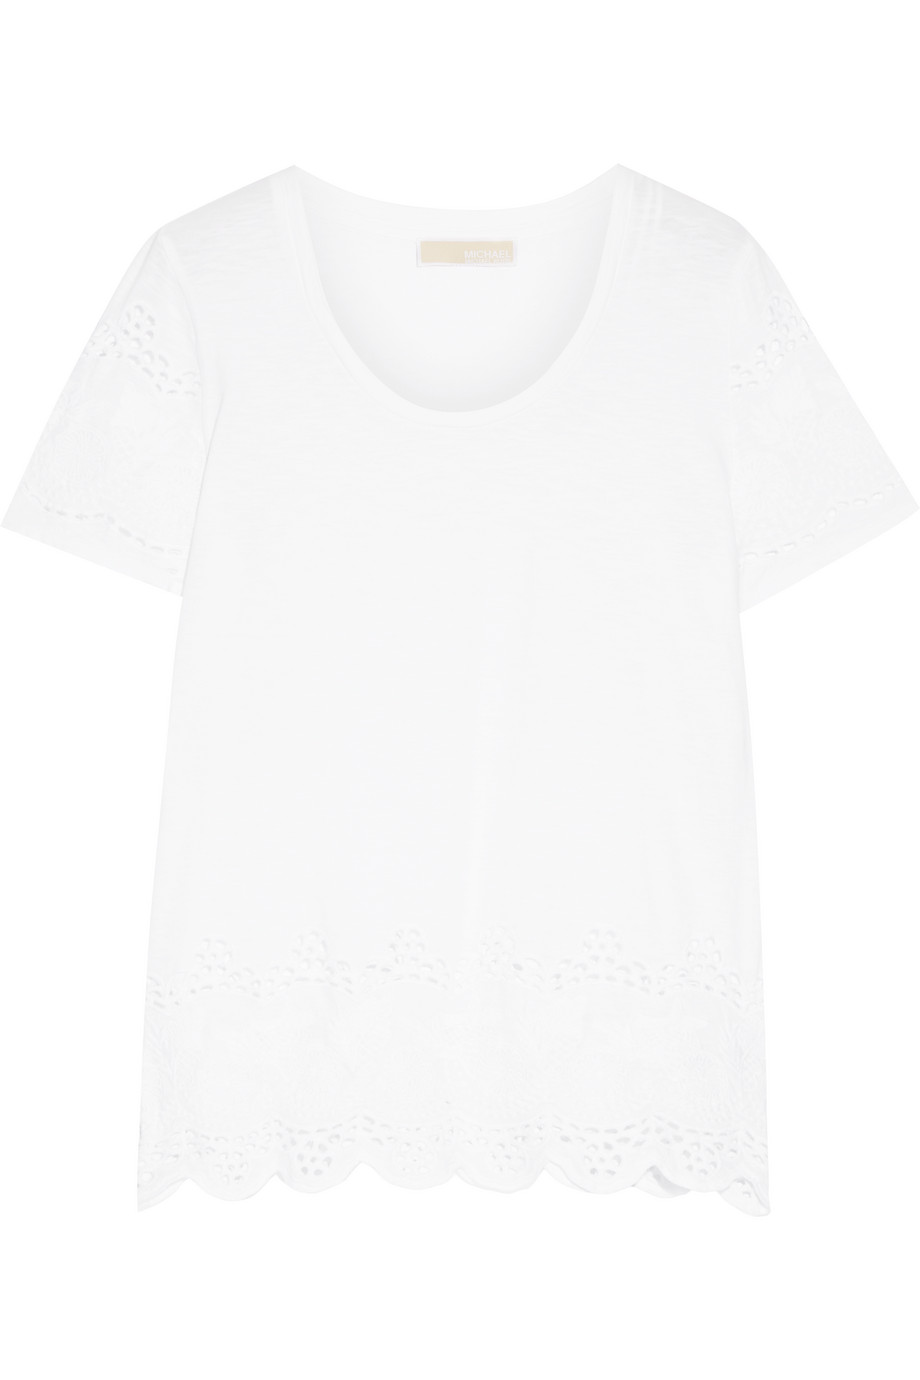 Broderie Anglaise Cotton Top, Michael Michael Kors, White, Women's, Size: S